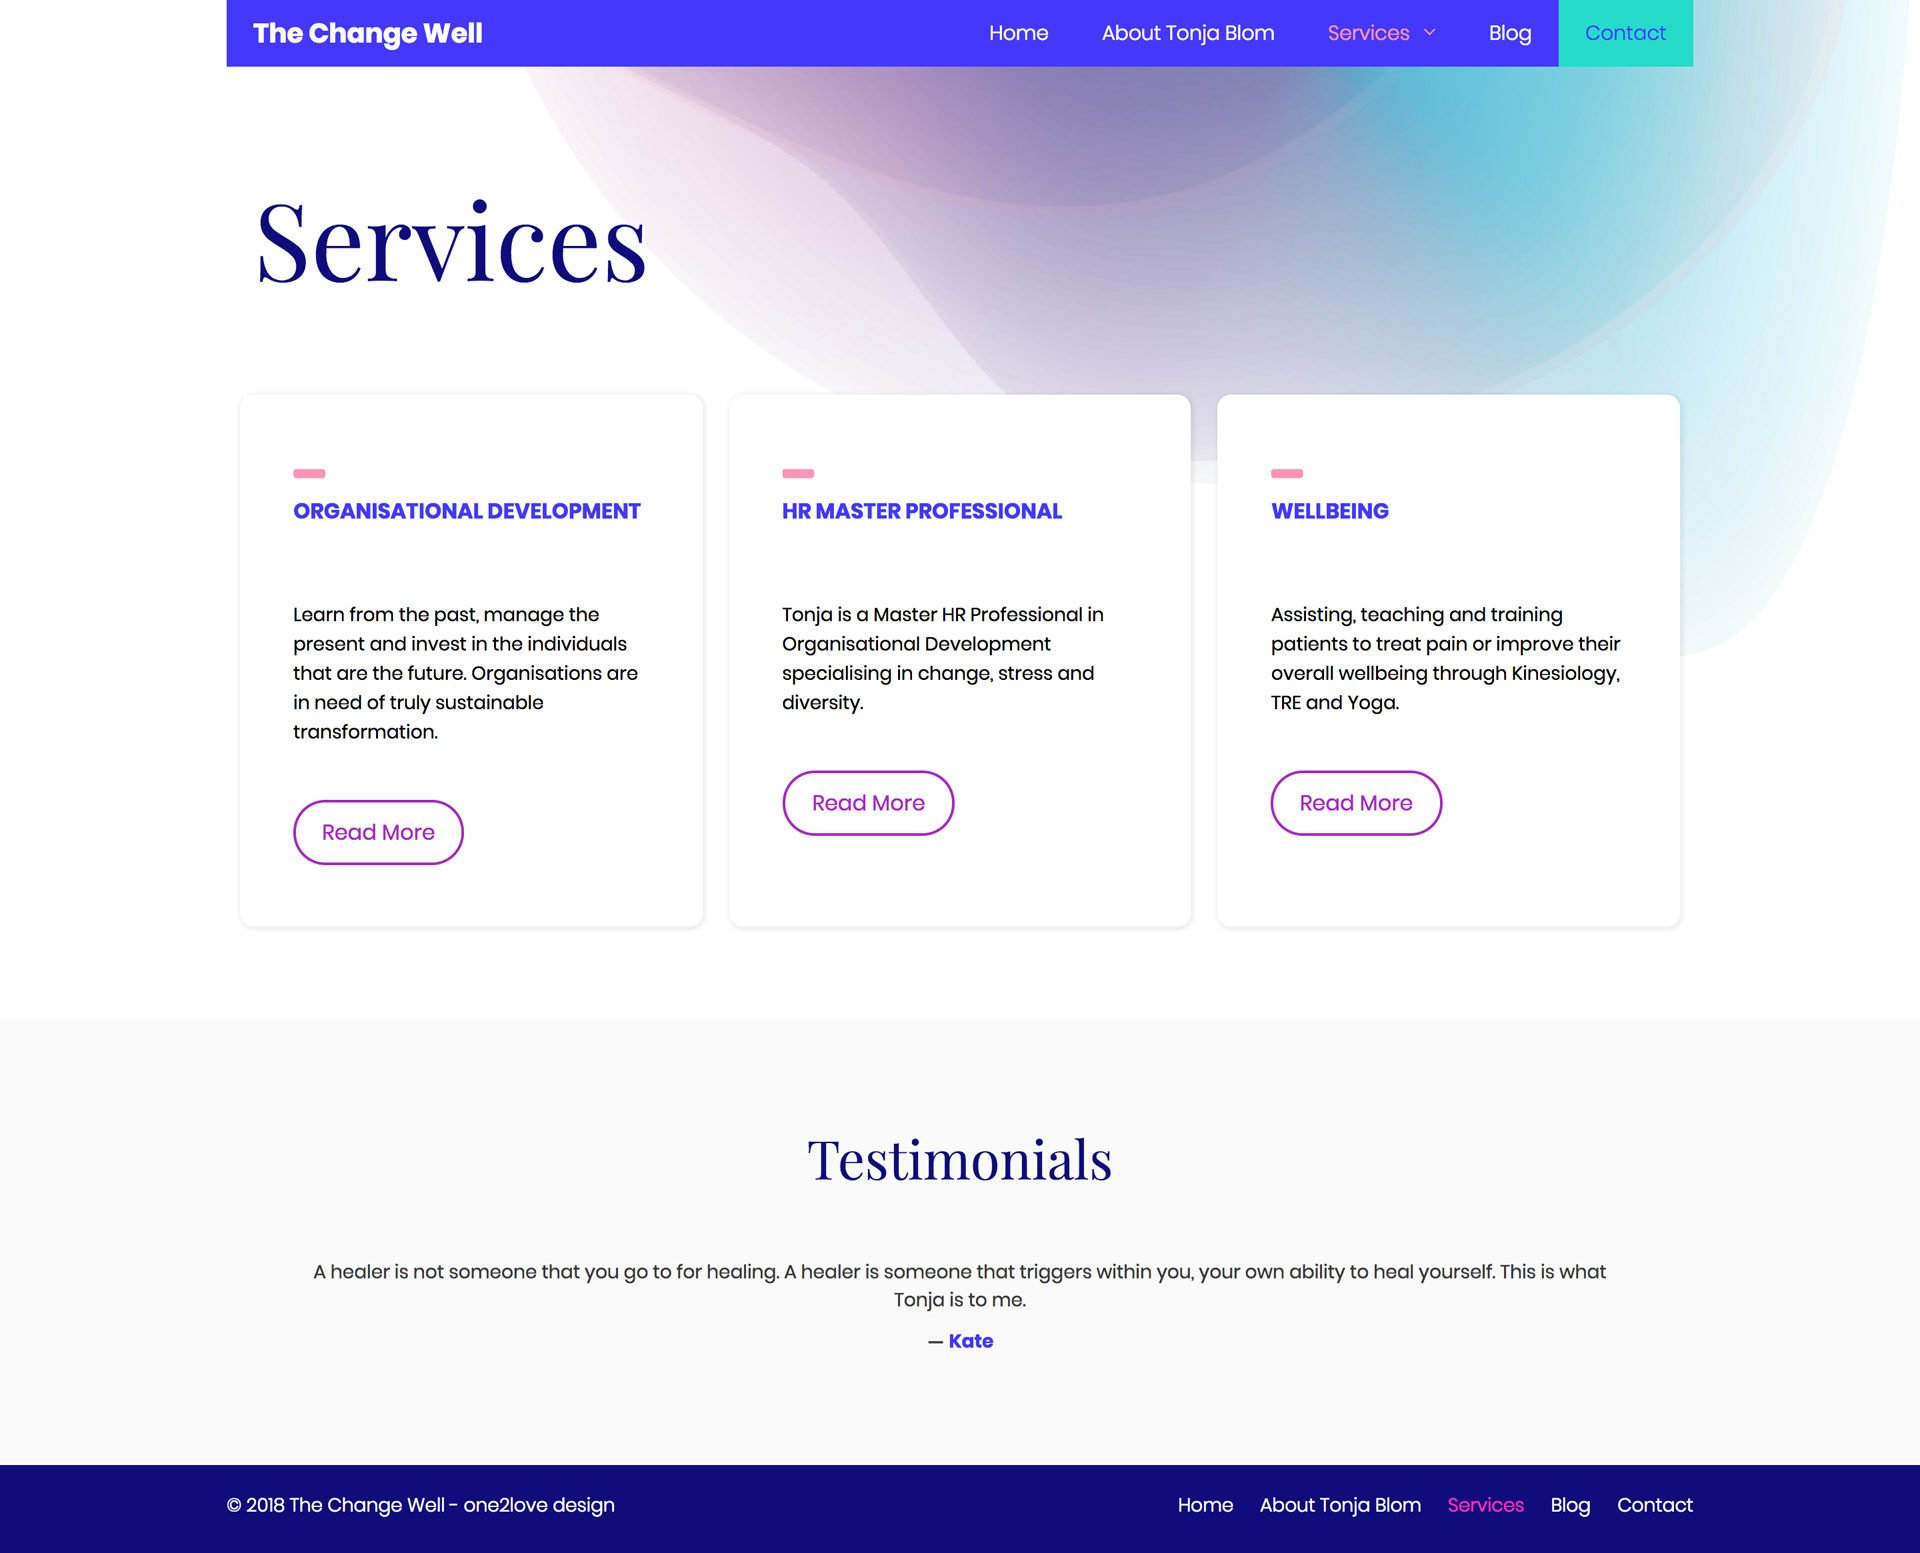 The Change Well Services